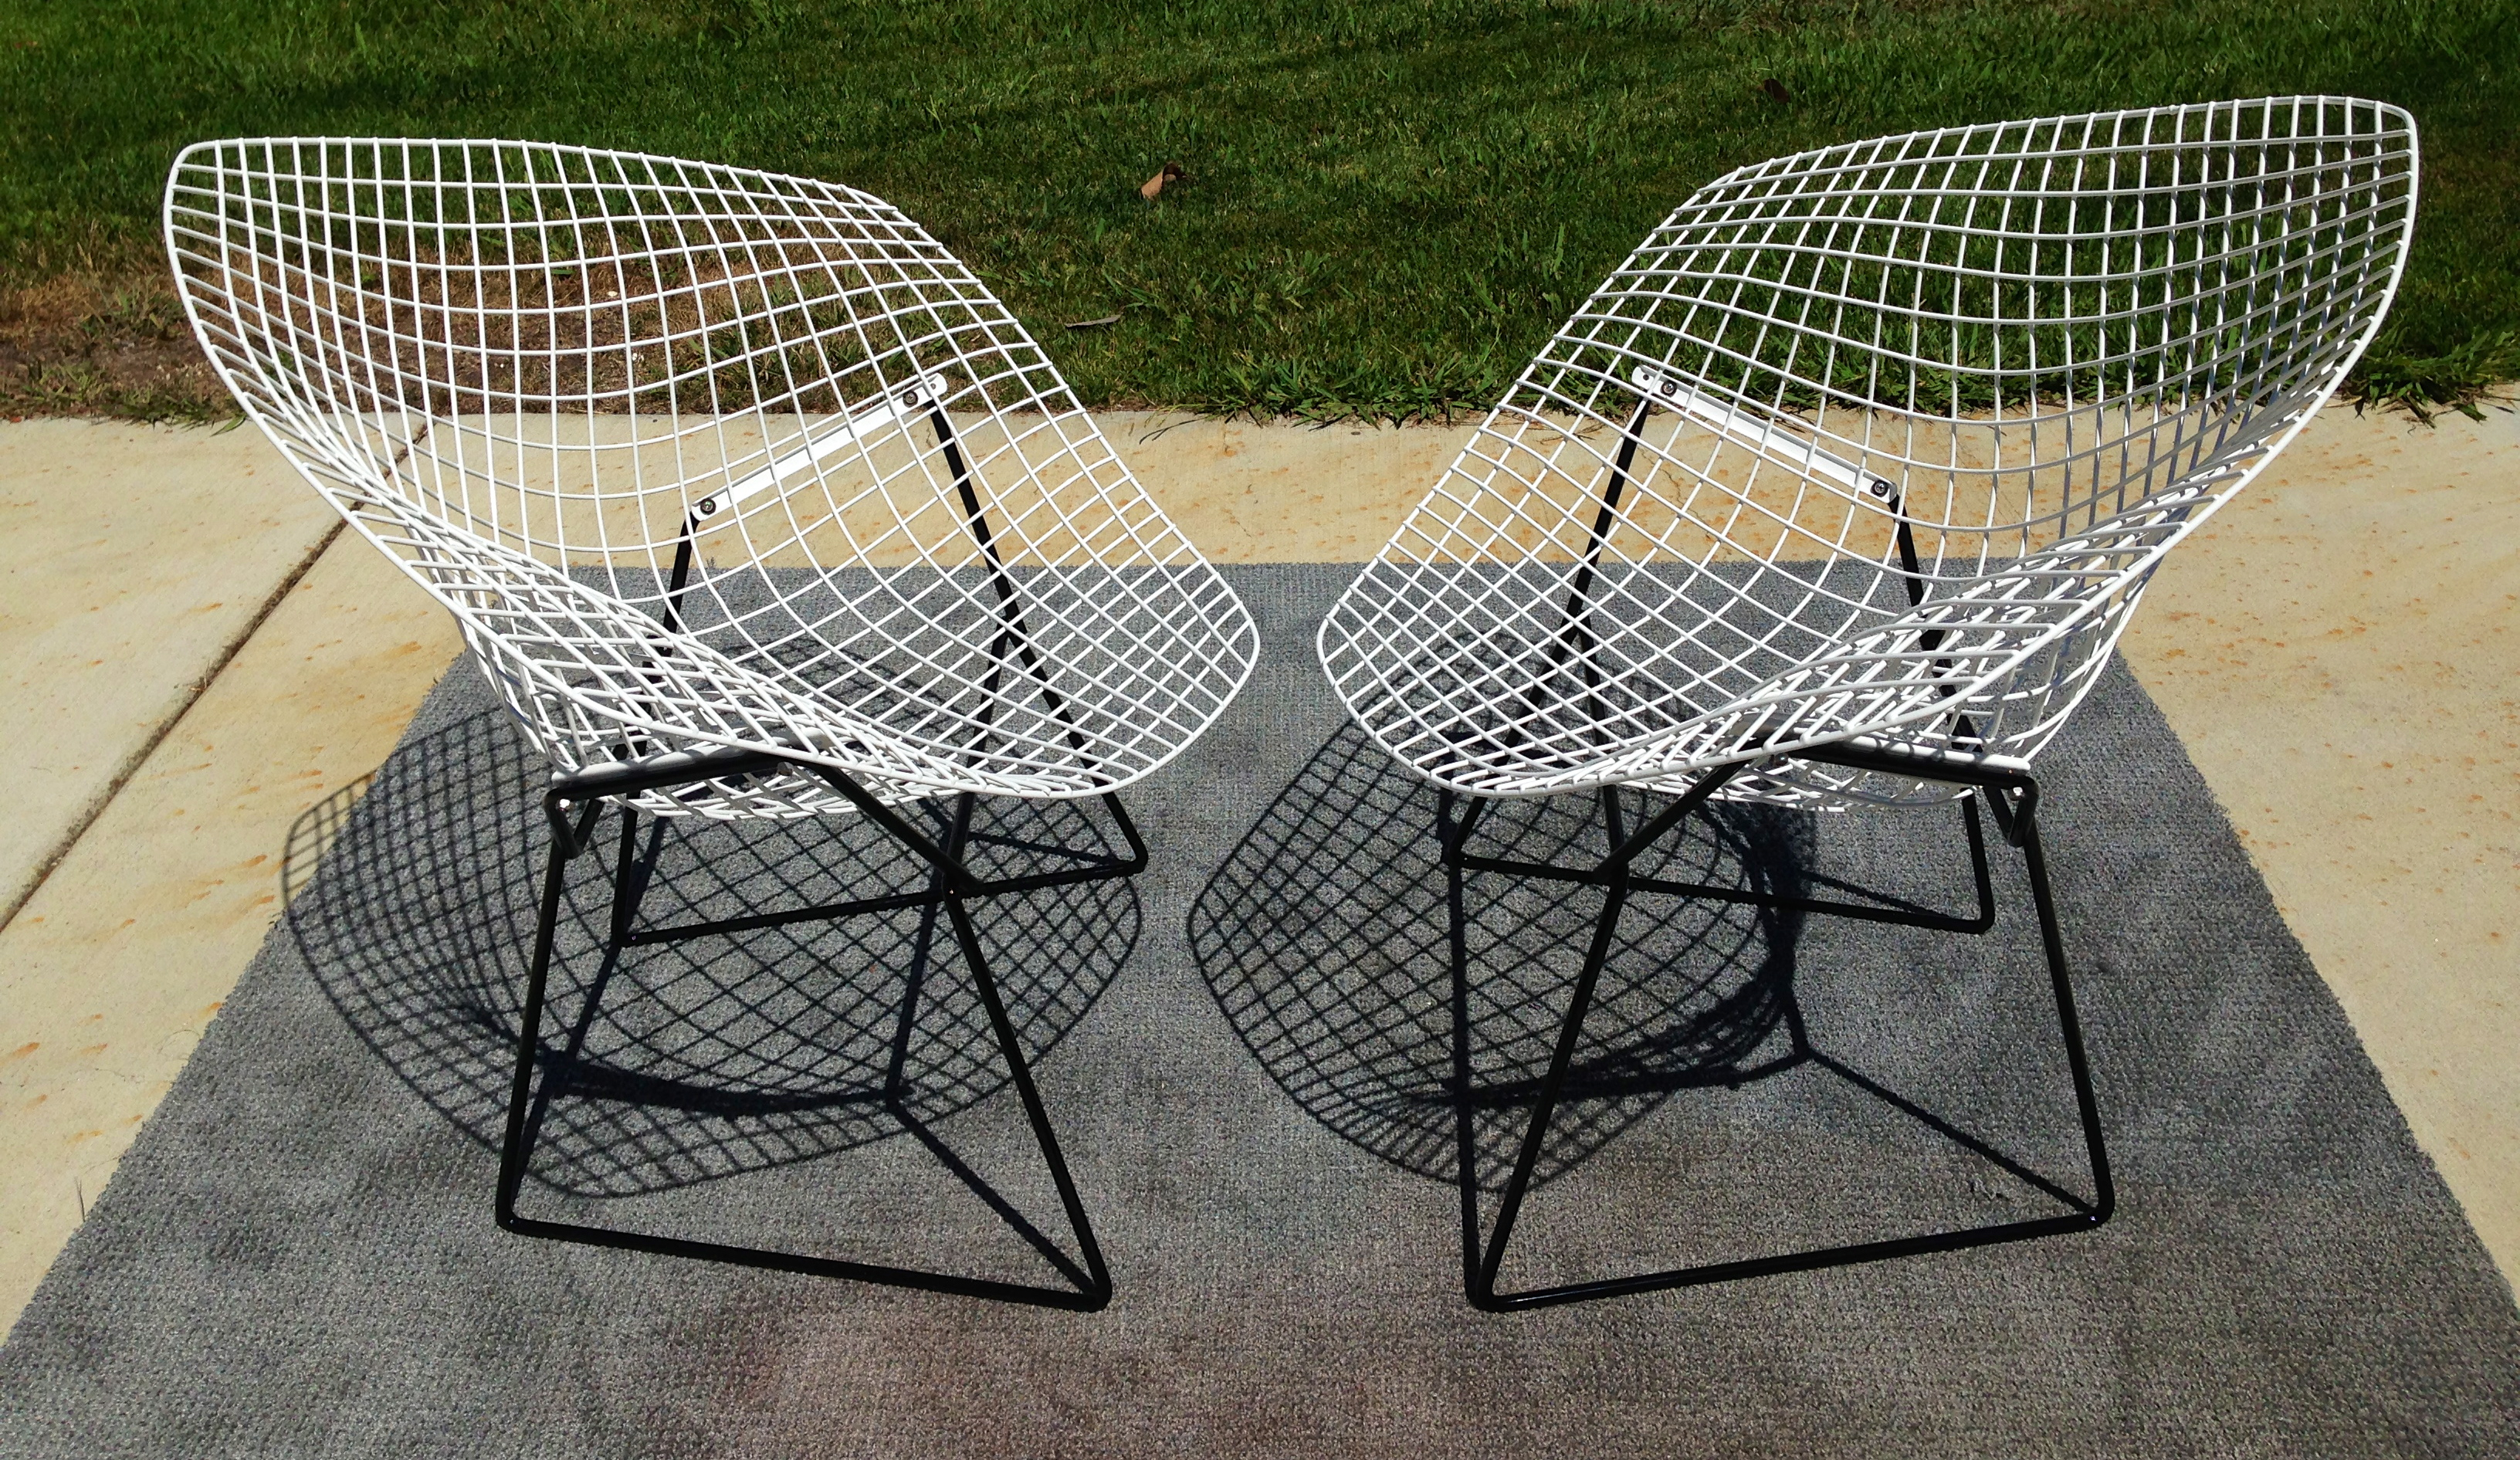 Superieur Set Of 2 Vintage Diamond Chairs Totally Restored (welding, Sand Blasting ,  Powder Coating Are Some Of The Steps The Chairs Went Through) In Gloss Bu0026W  With ...